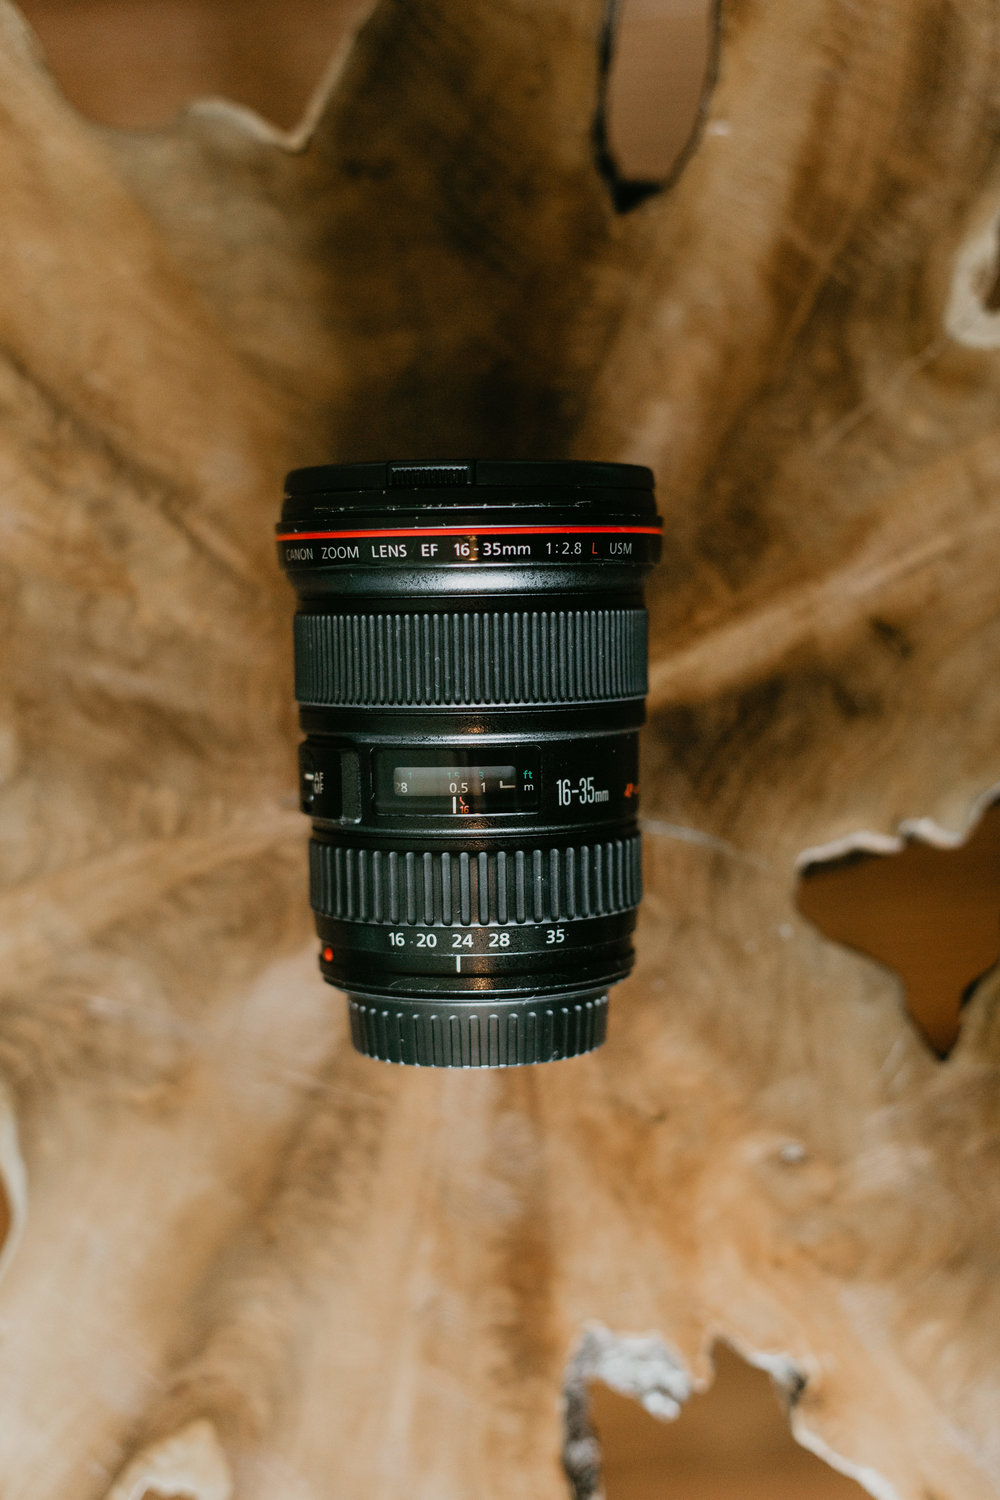 Nicole-daacke-photography-recommended gear-3.jpg